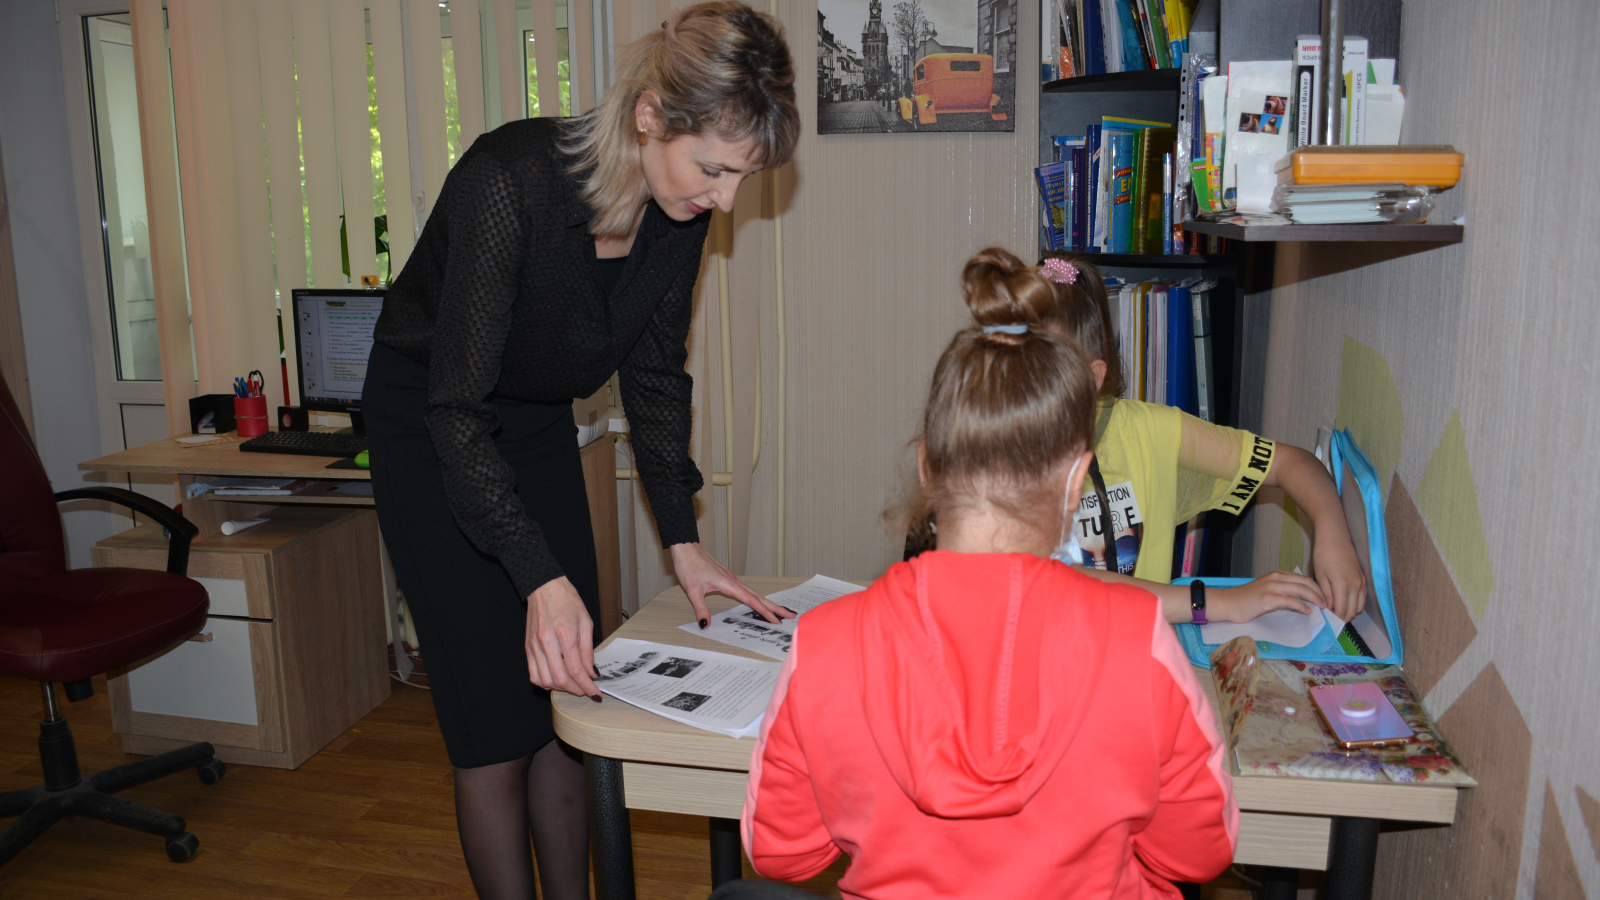 EU4Youth story from Ukraine: from private lessons for children to a chain of English language schools